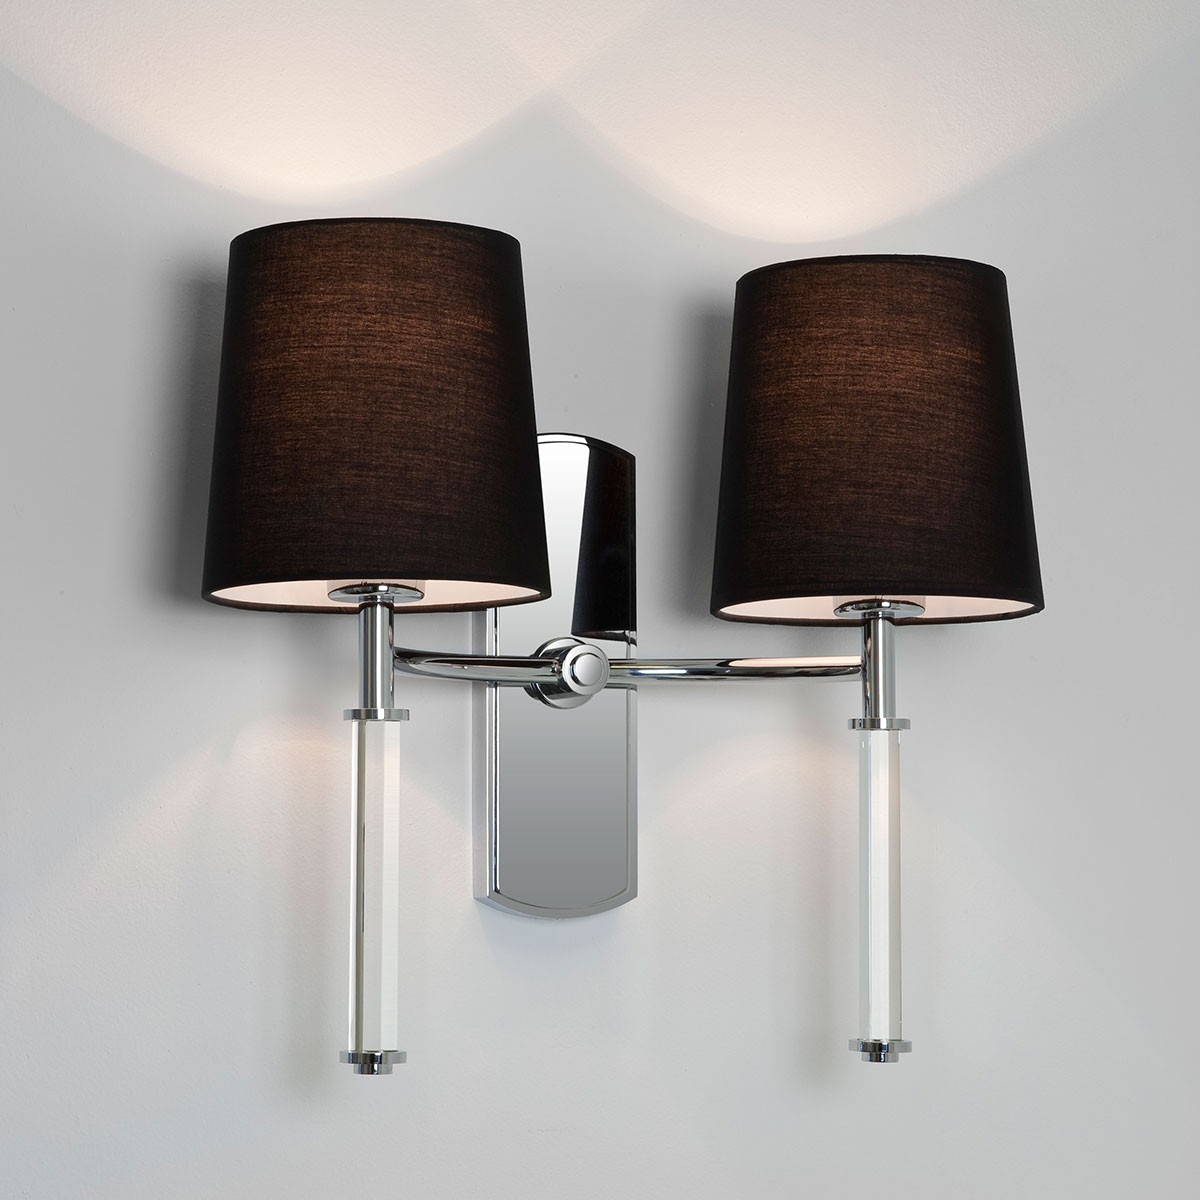 Astro Delphi Twin Polished Chrome Wall Light at UK Electrical Supplies.